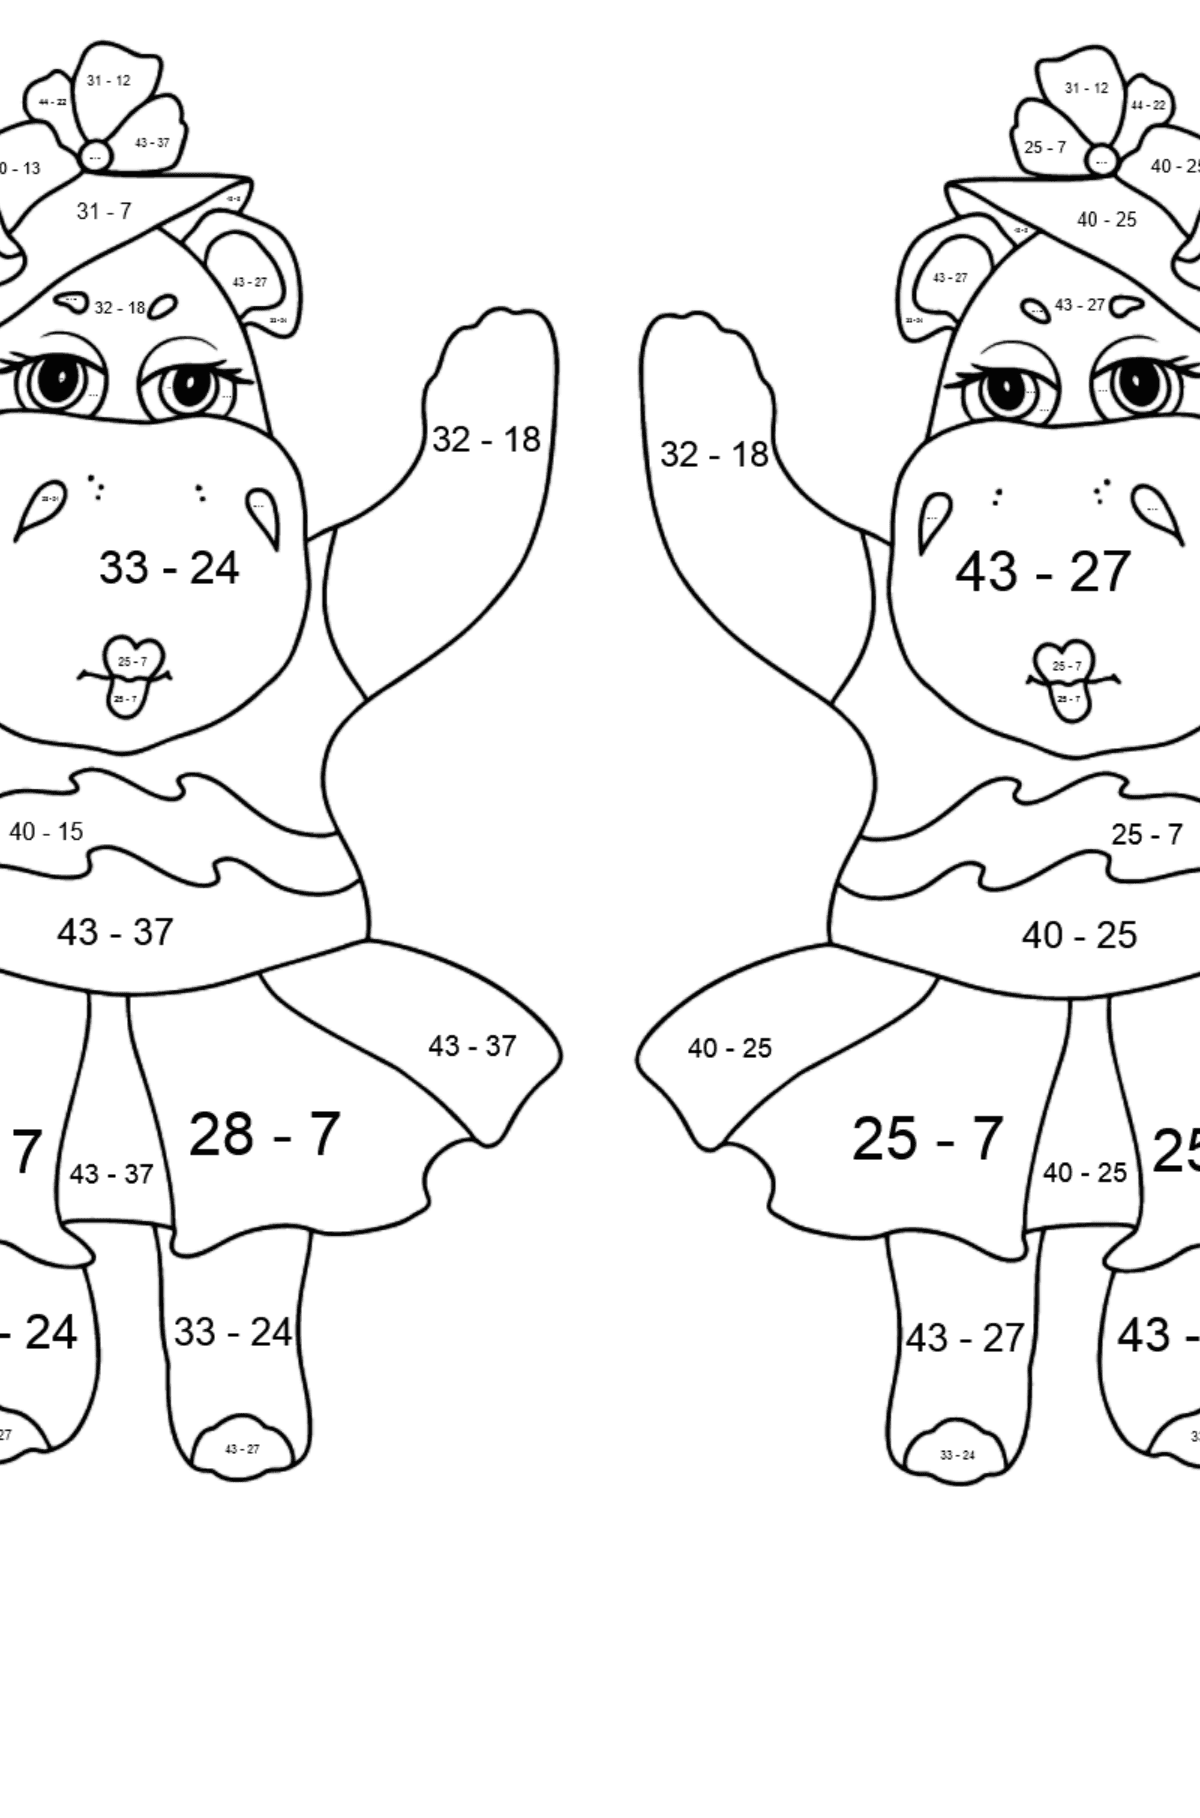 Coloring Page - Hippos are Harvesting the Crops - Math Coloring - Subtraction for Kids